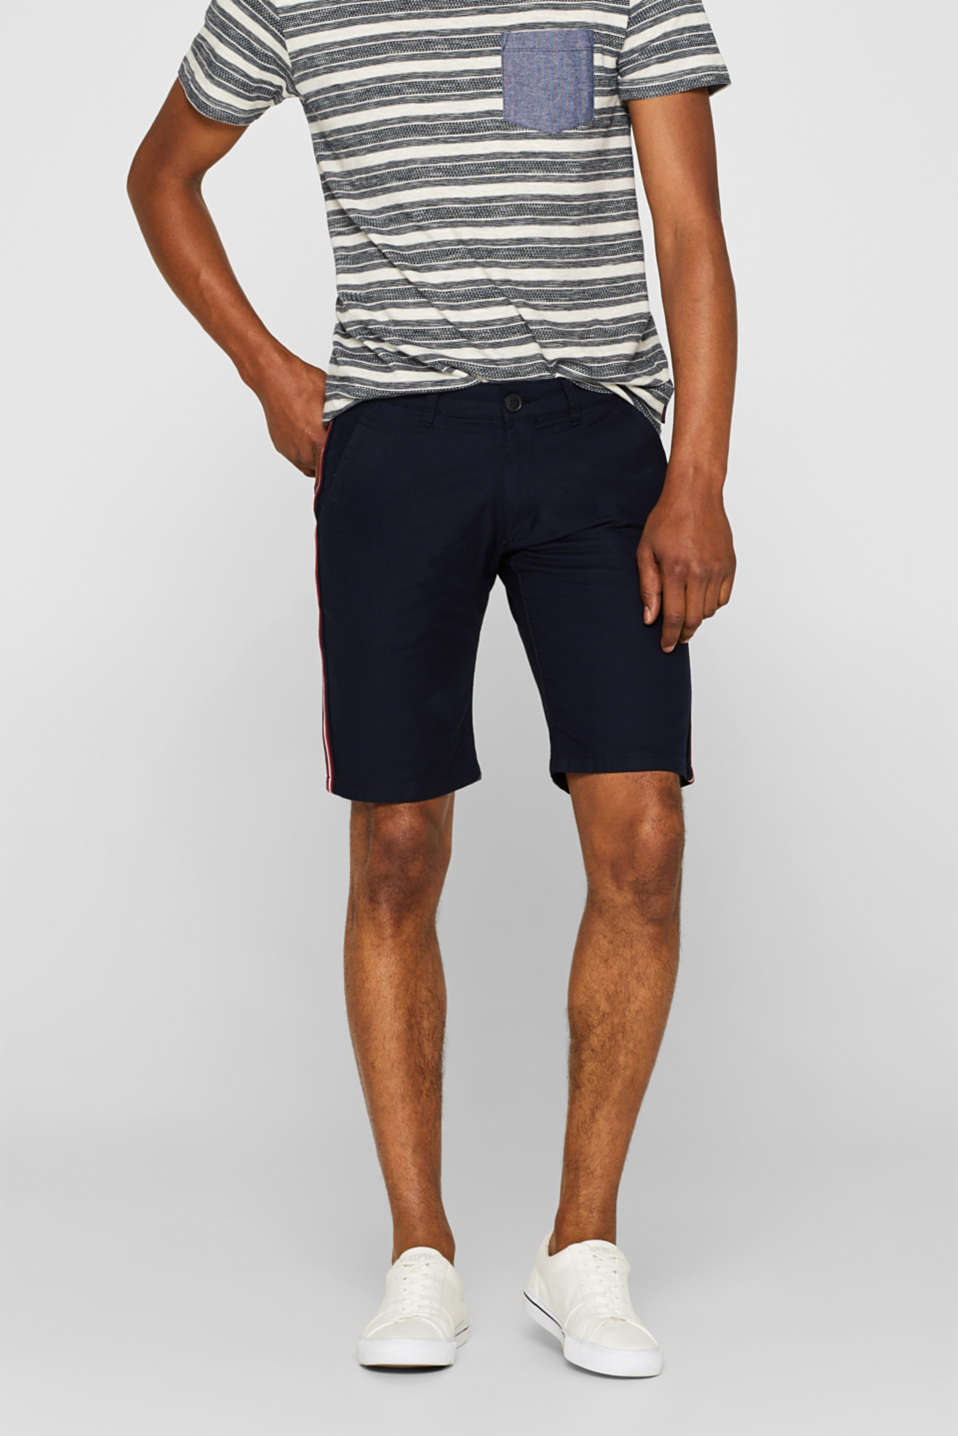 edc - Stretch cotton shorts with racing stripes